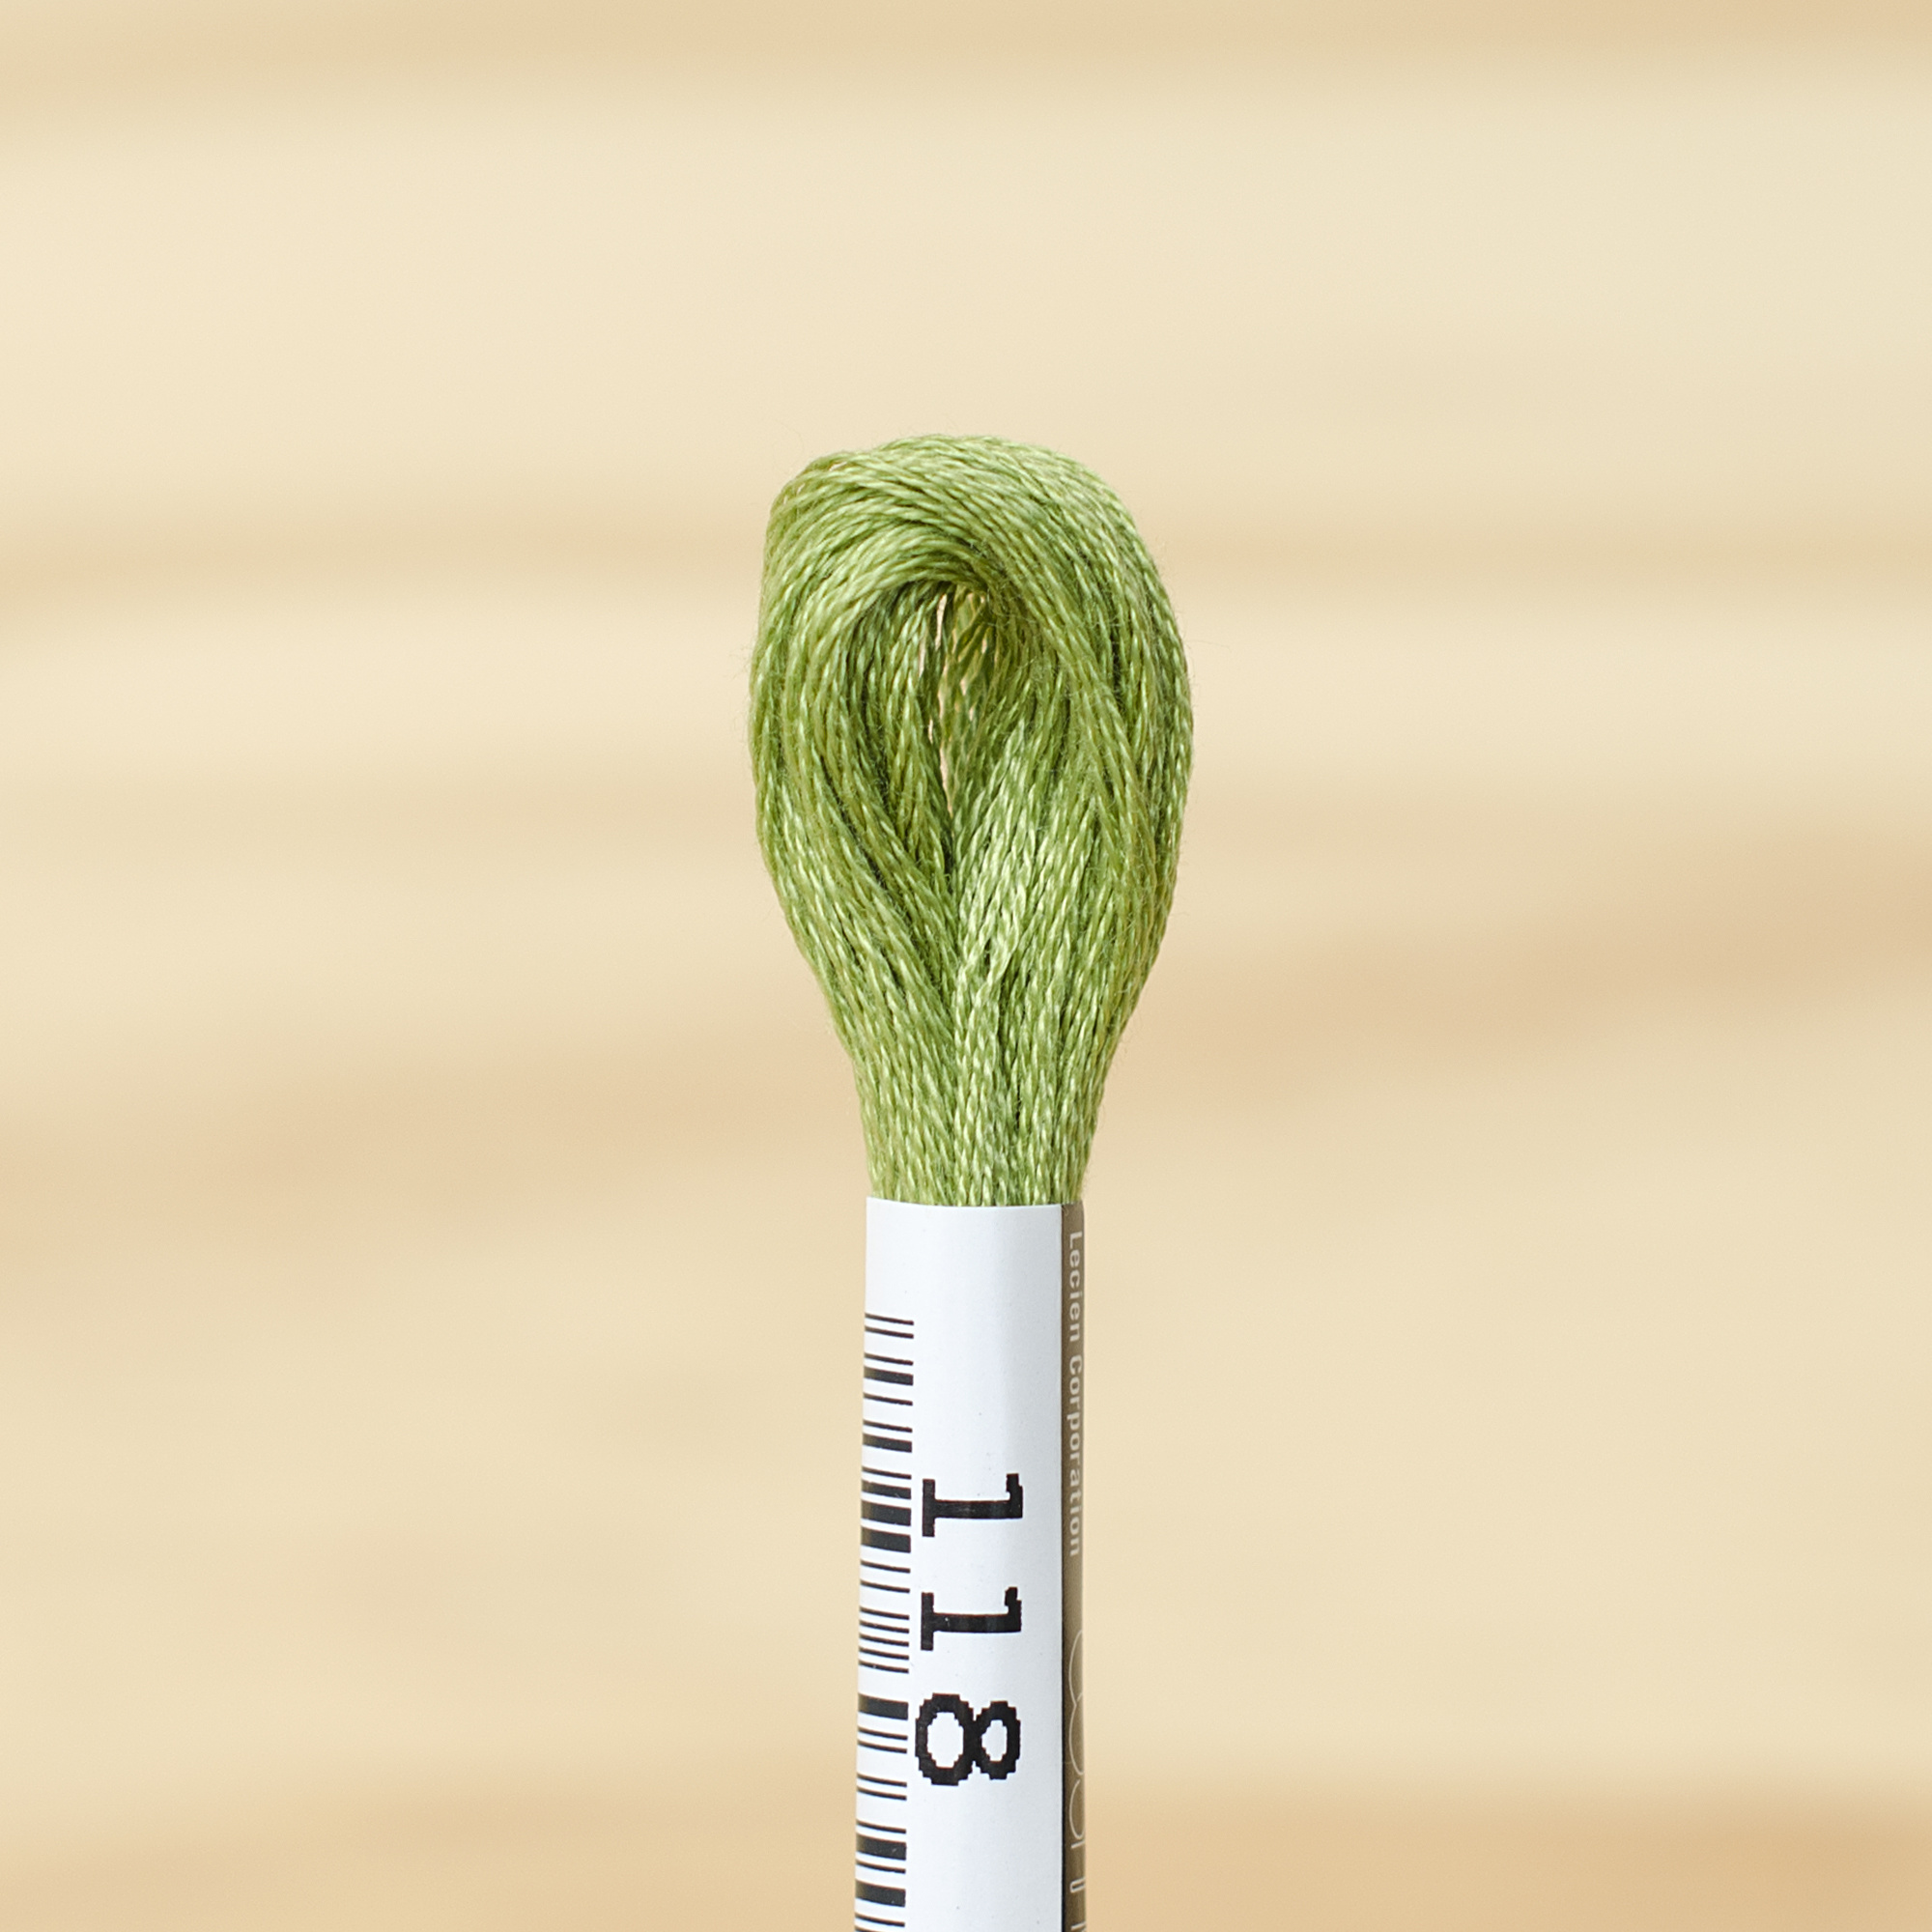 Cosmo Cotton Embroidery Floss : 8m skein : 118